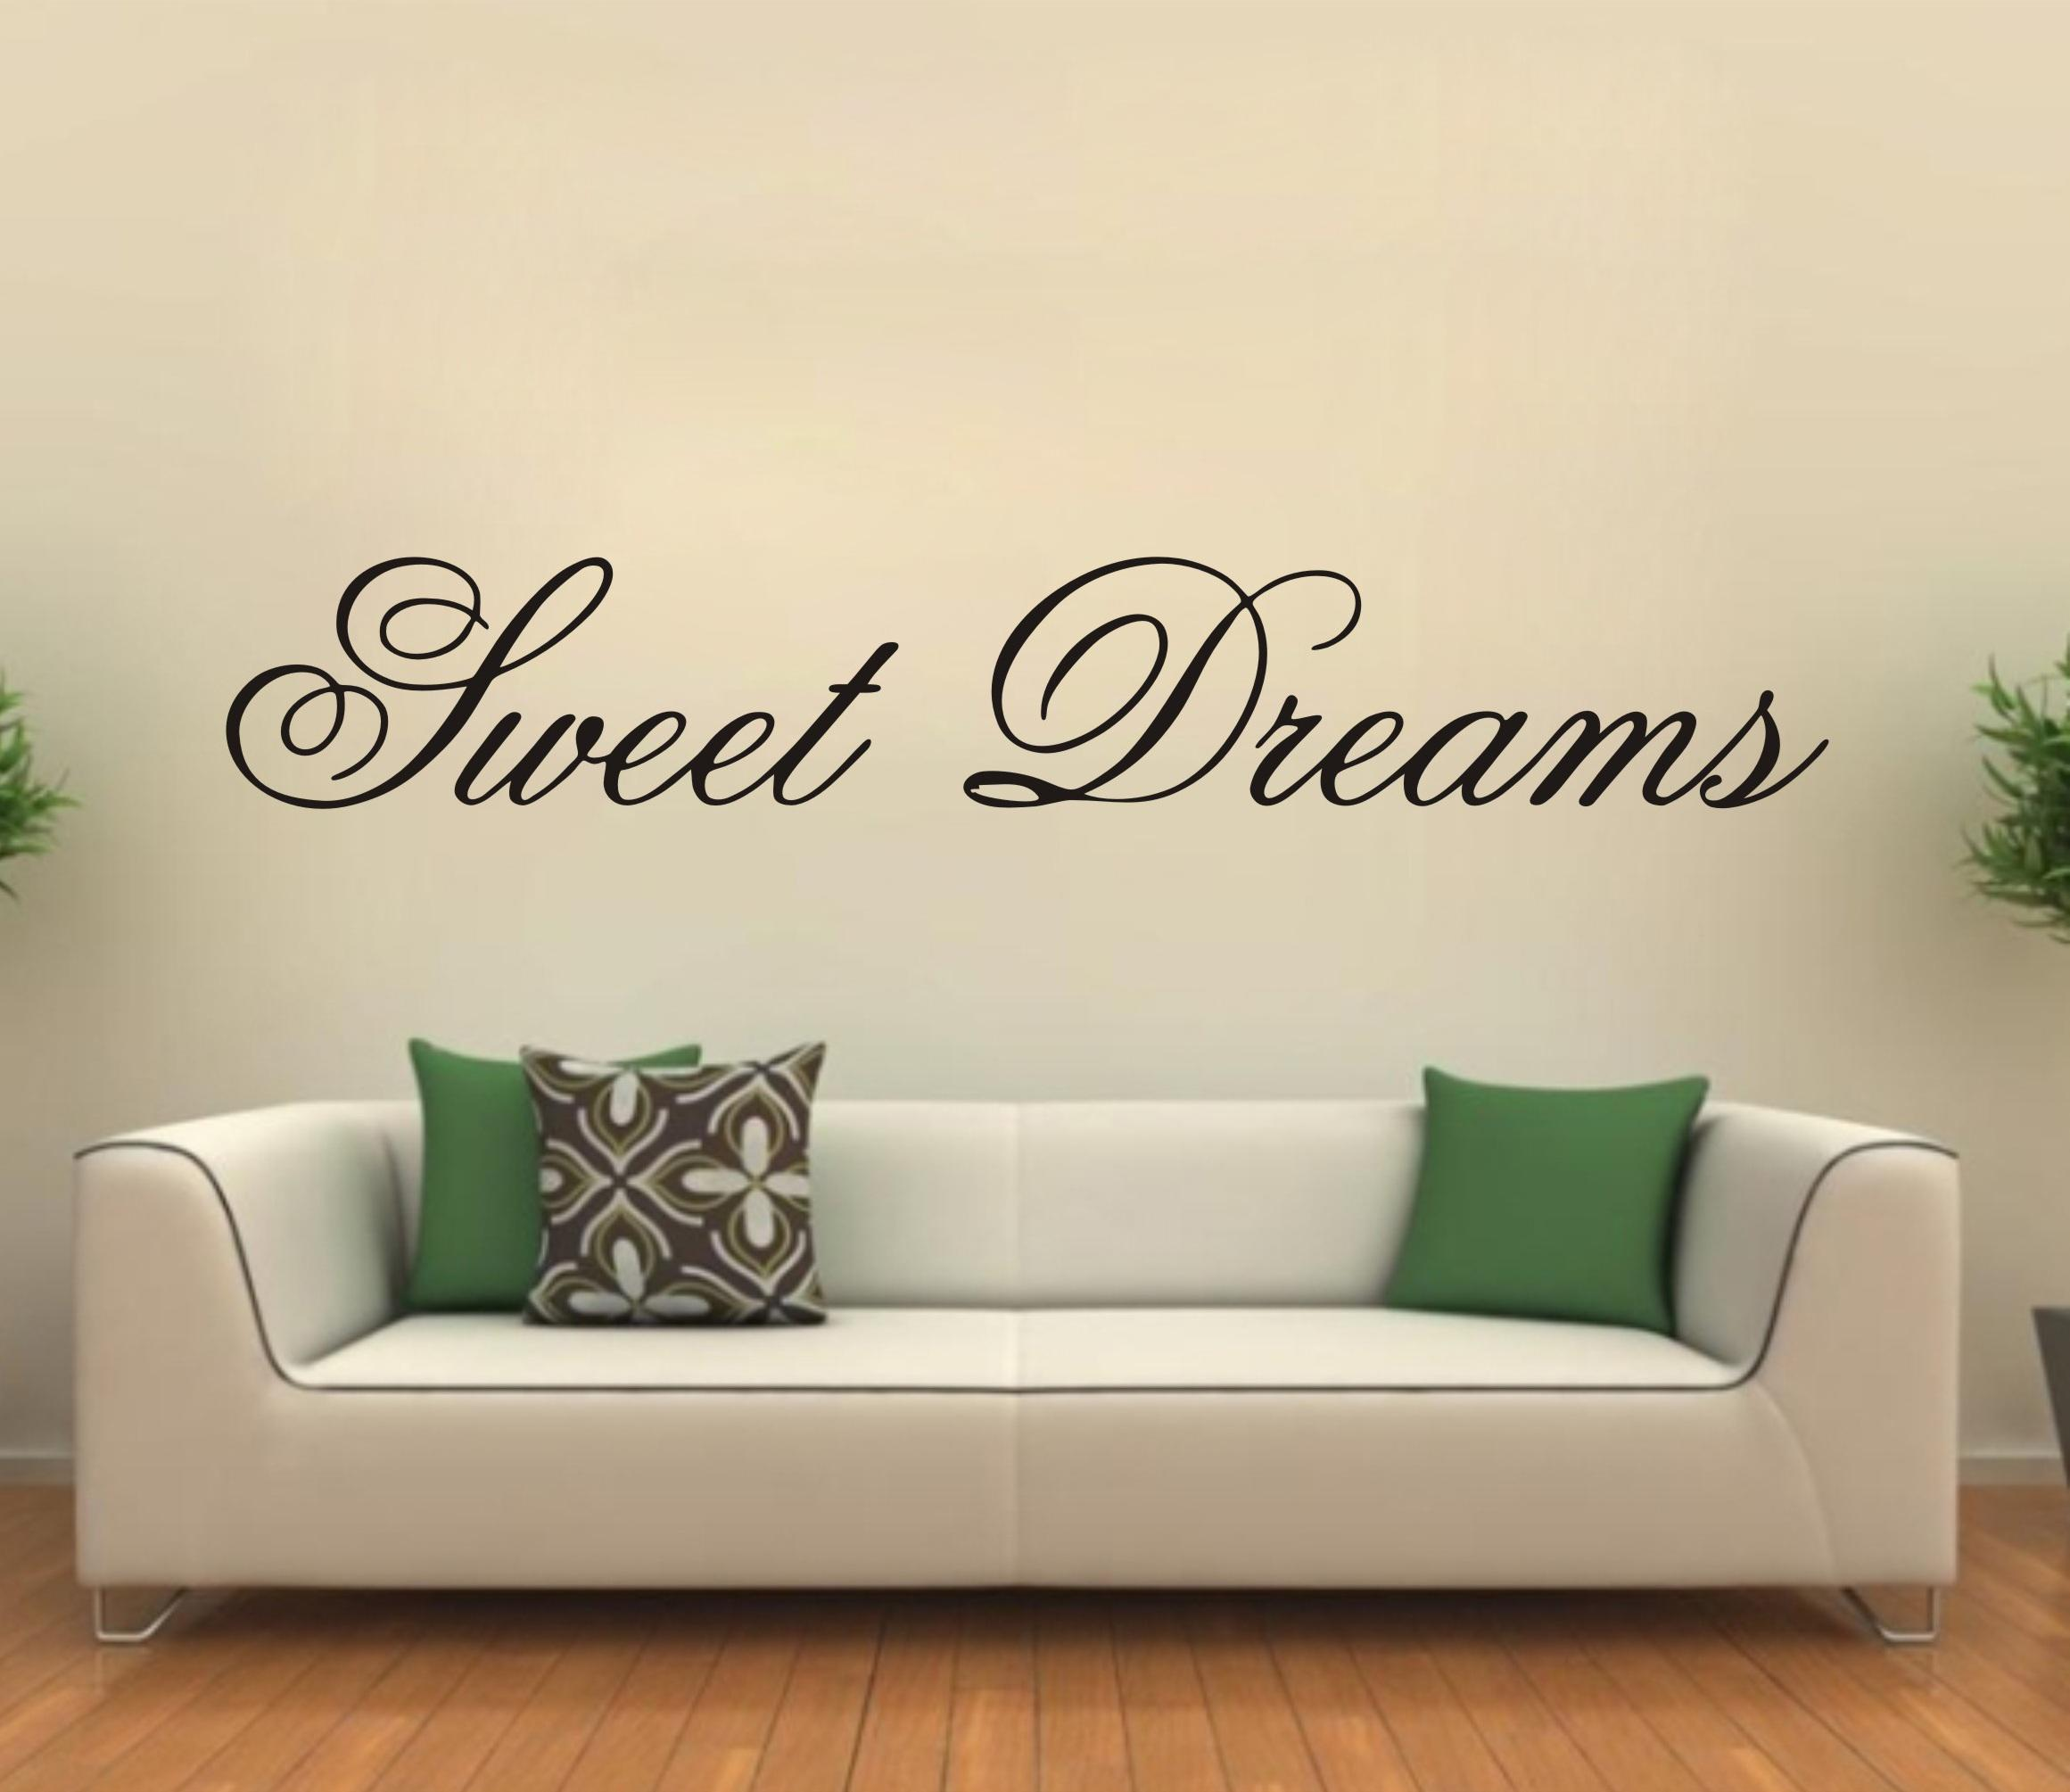 Modern Wall Sticker Sweet Dreams Vinyl Art Mural Living Room ...